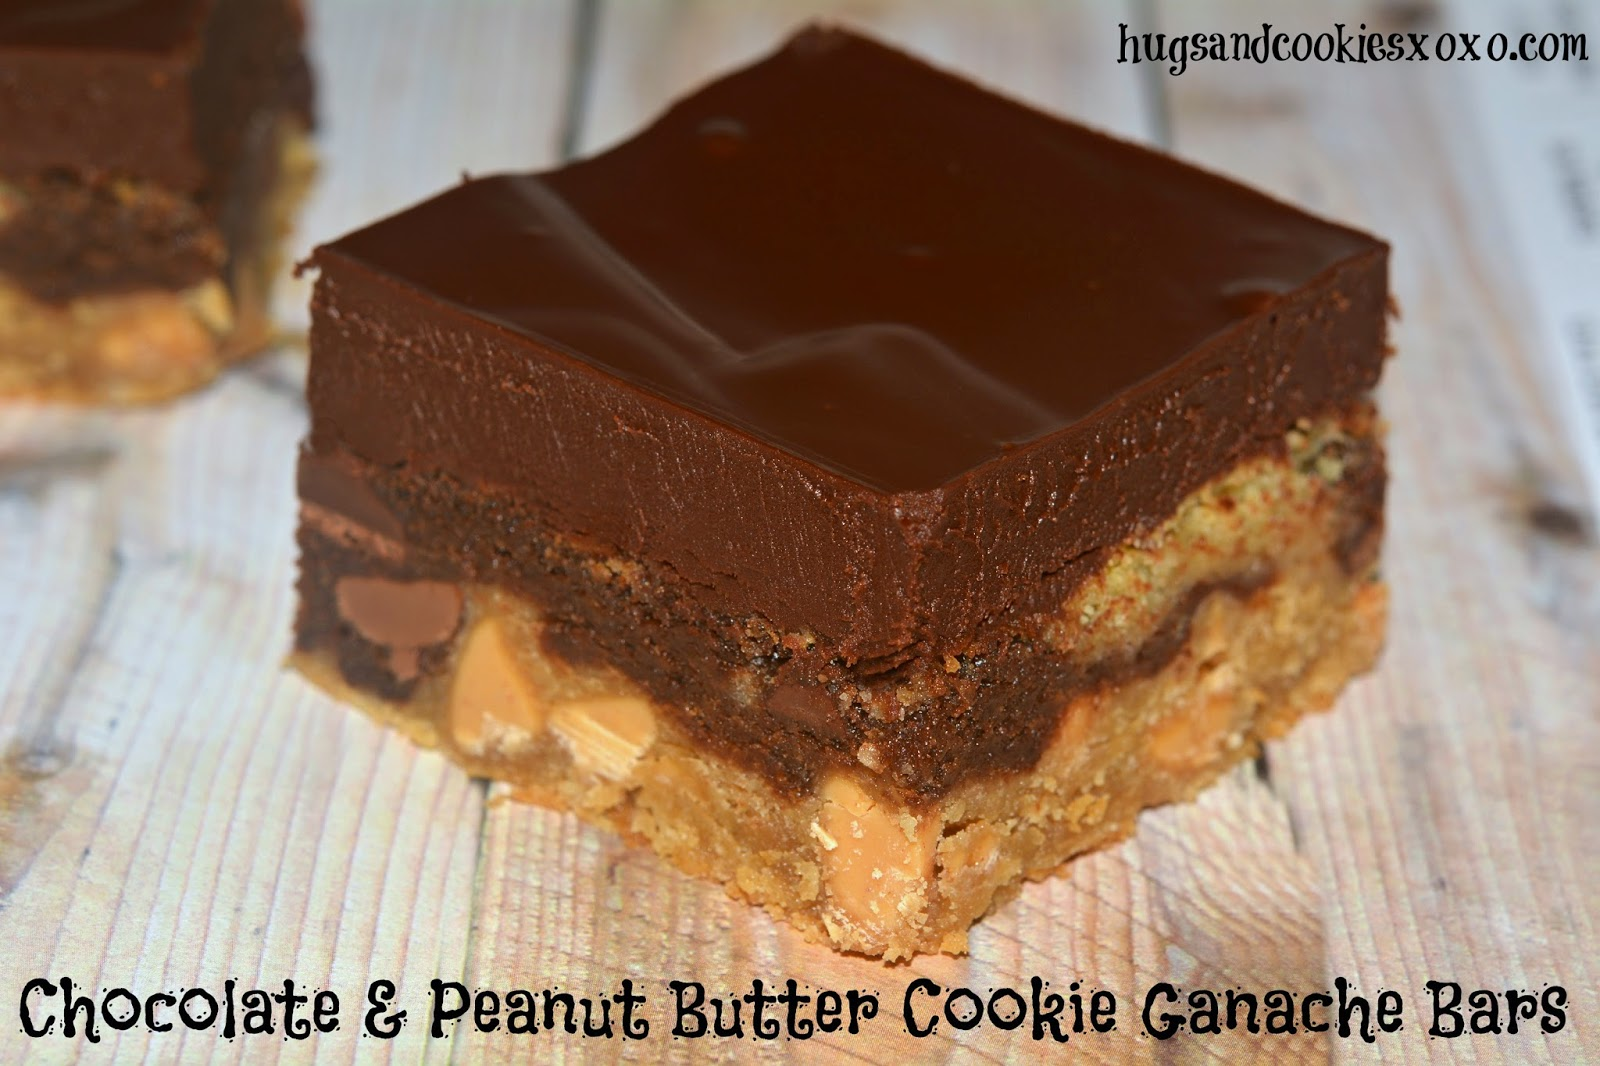 chocolate & peanut butter ganache cookies bars